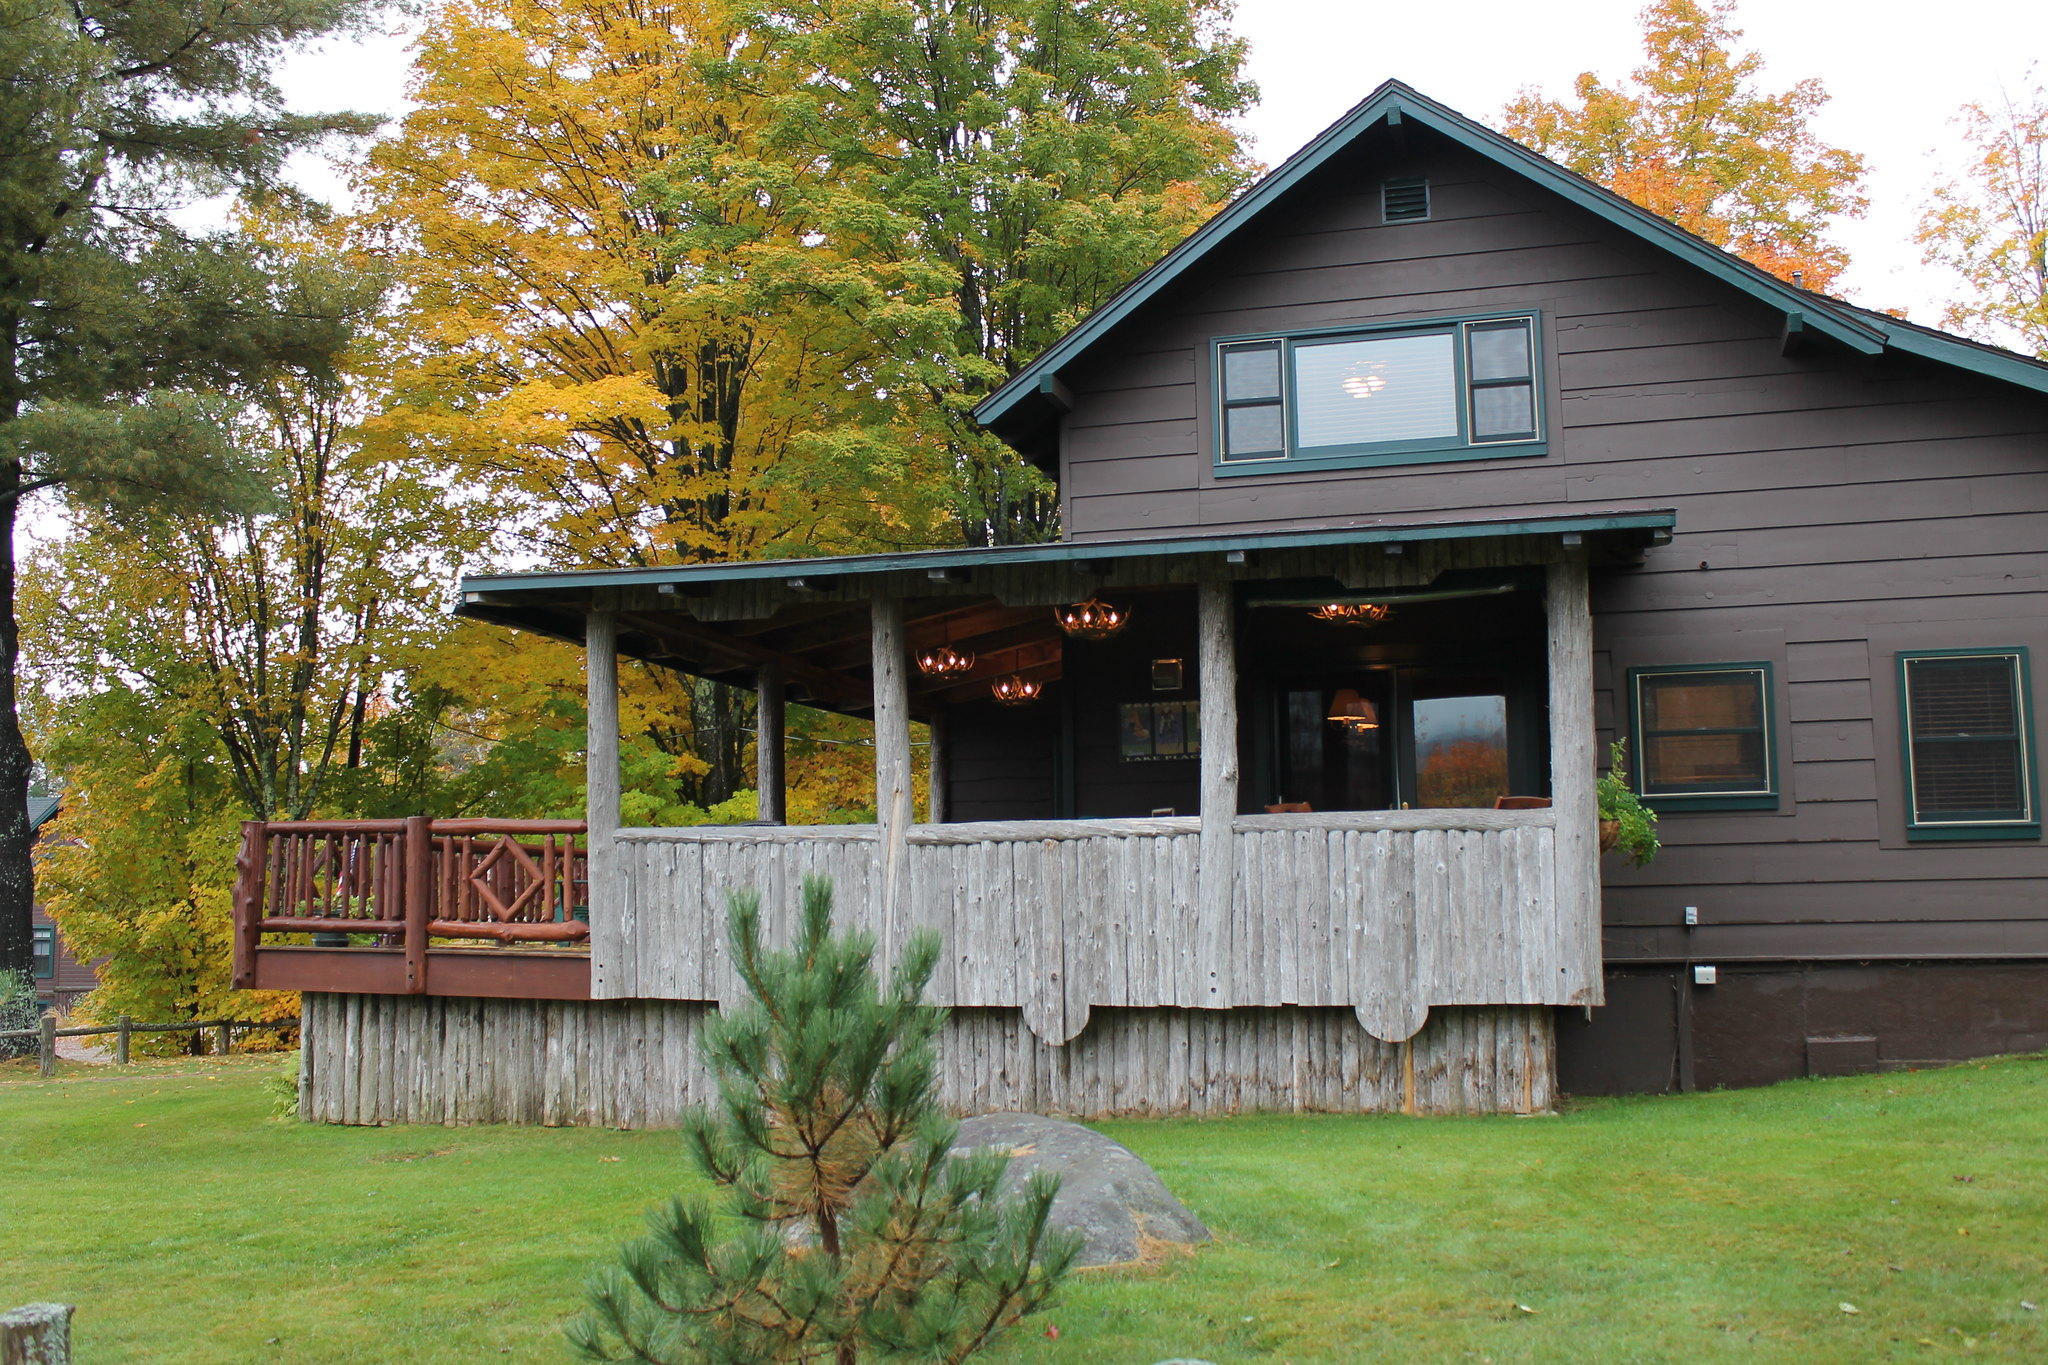 guest cabin catskills schoharie new middleburgh country realty in rent co york upstate with and cabins barns fine house compound real ny farmhouse